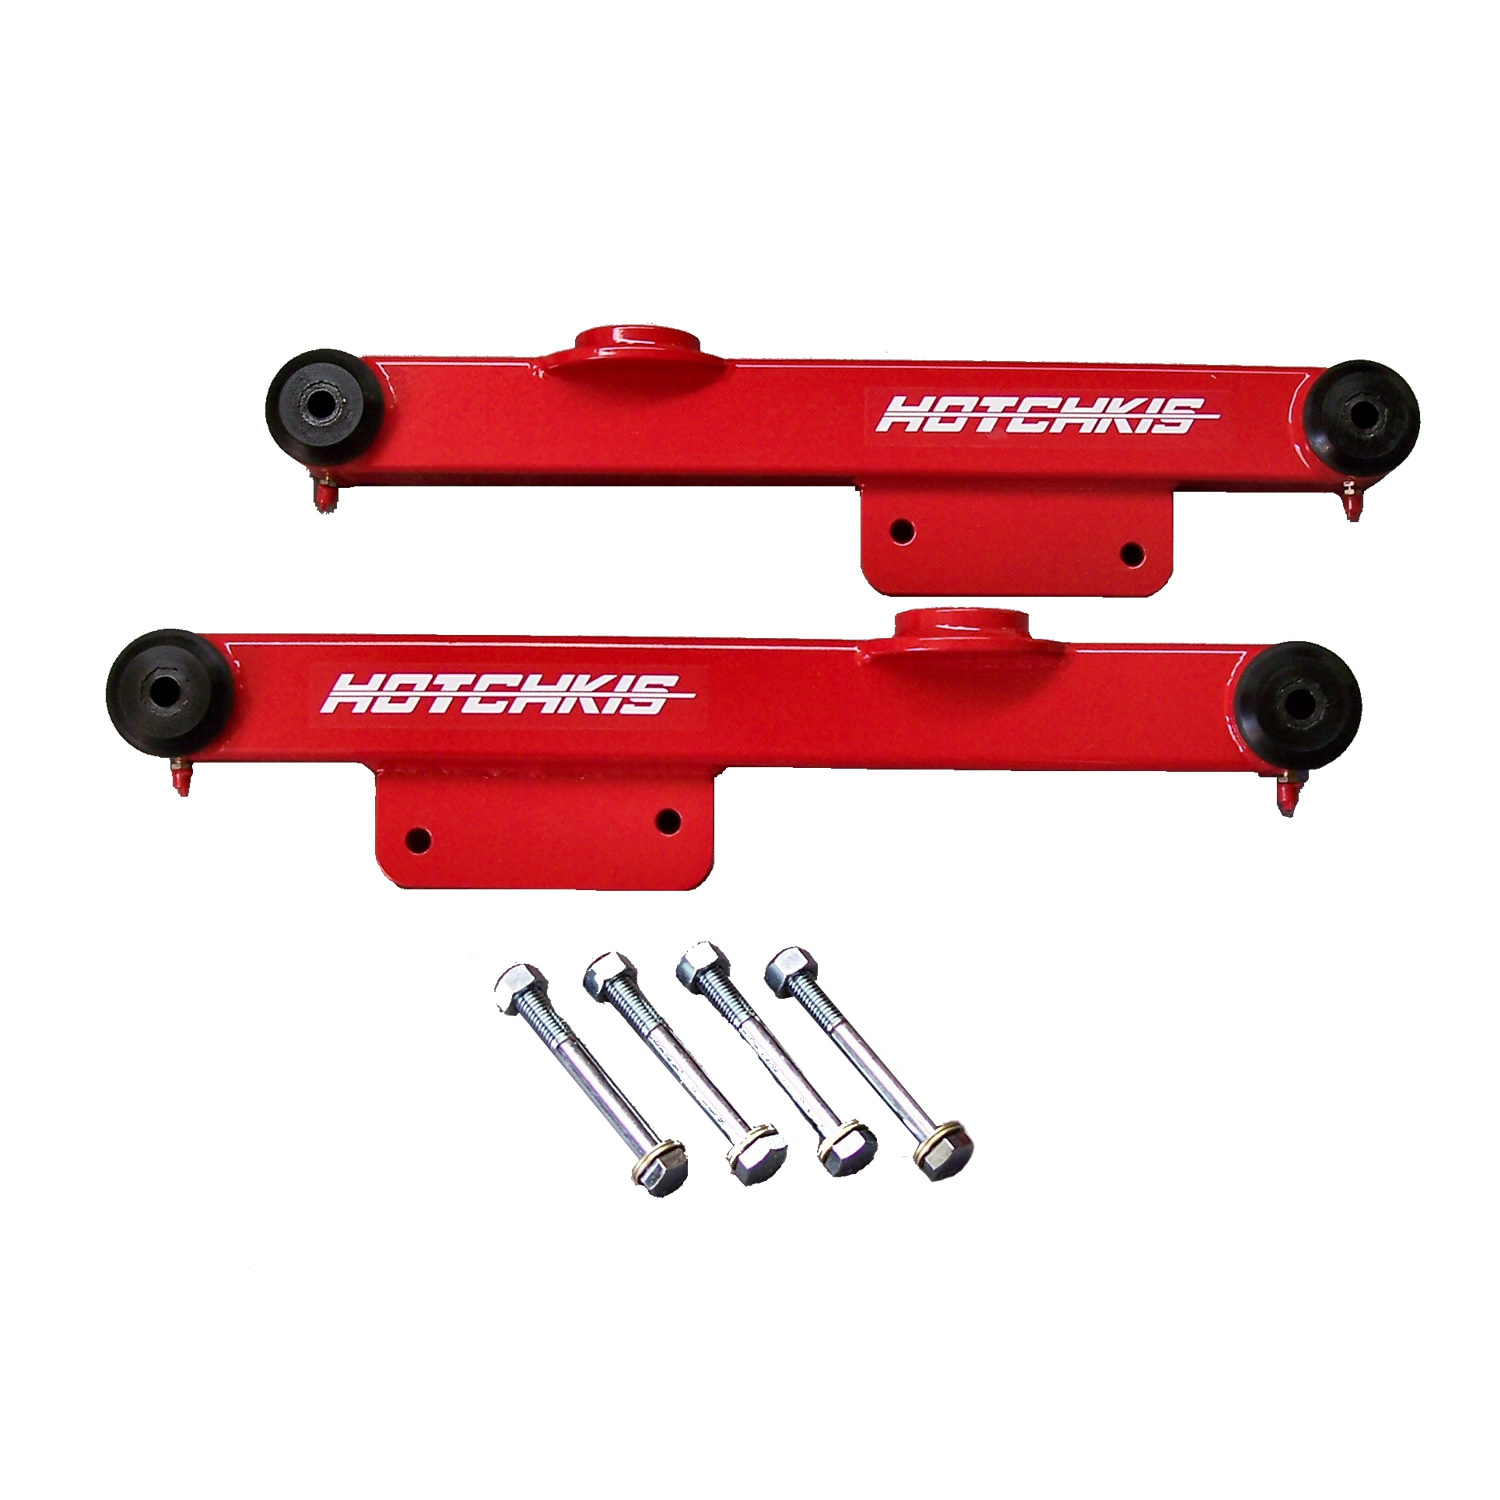 Hotchkis 99-04 Ford Mustang GT Red Lower Trailing Arms - Hotchkis 1311R